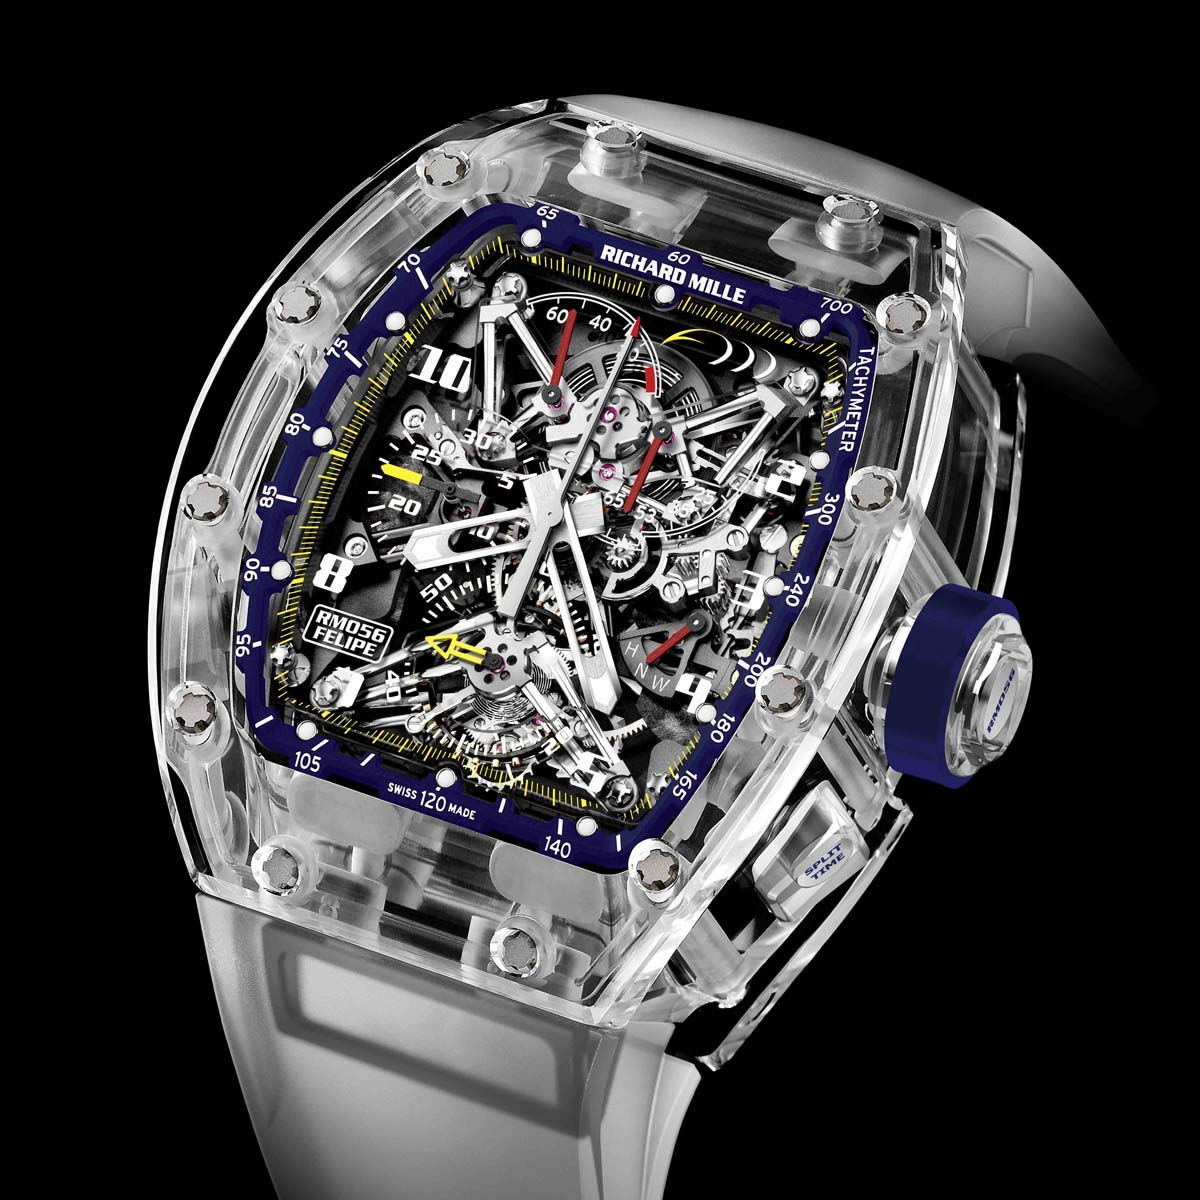 Richard Mille RM 056 Felipe Massa 10th Anniversary